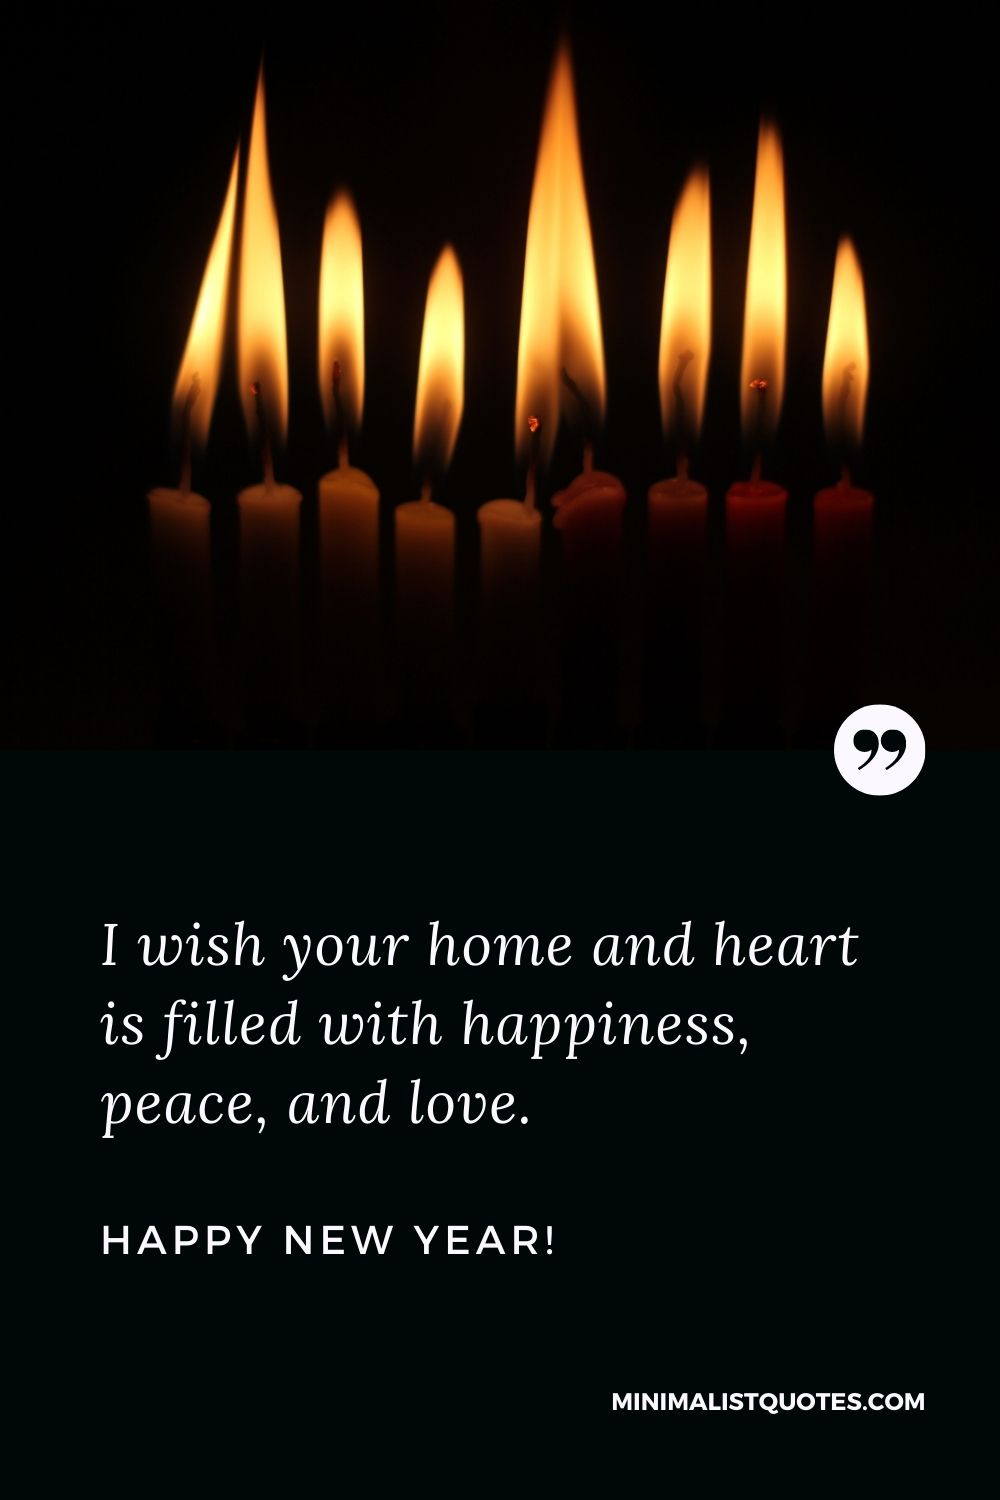 New Year Wishes For Office: I wish your home and heart is filled with happiness, peace, and love. Happy New Year!